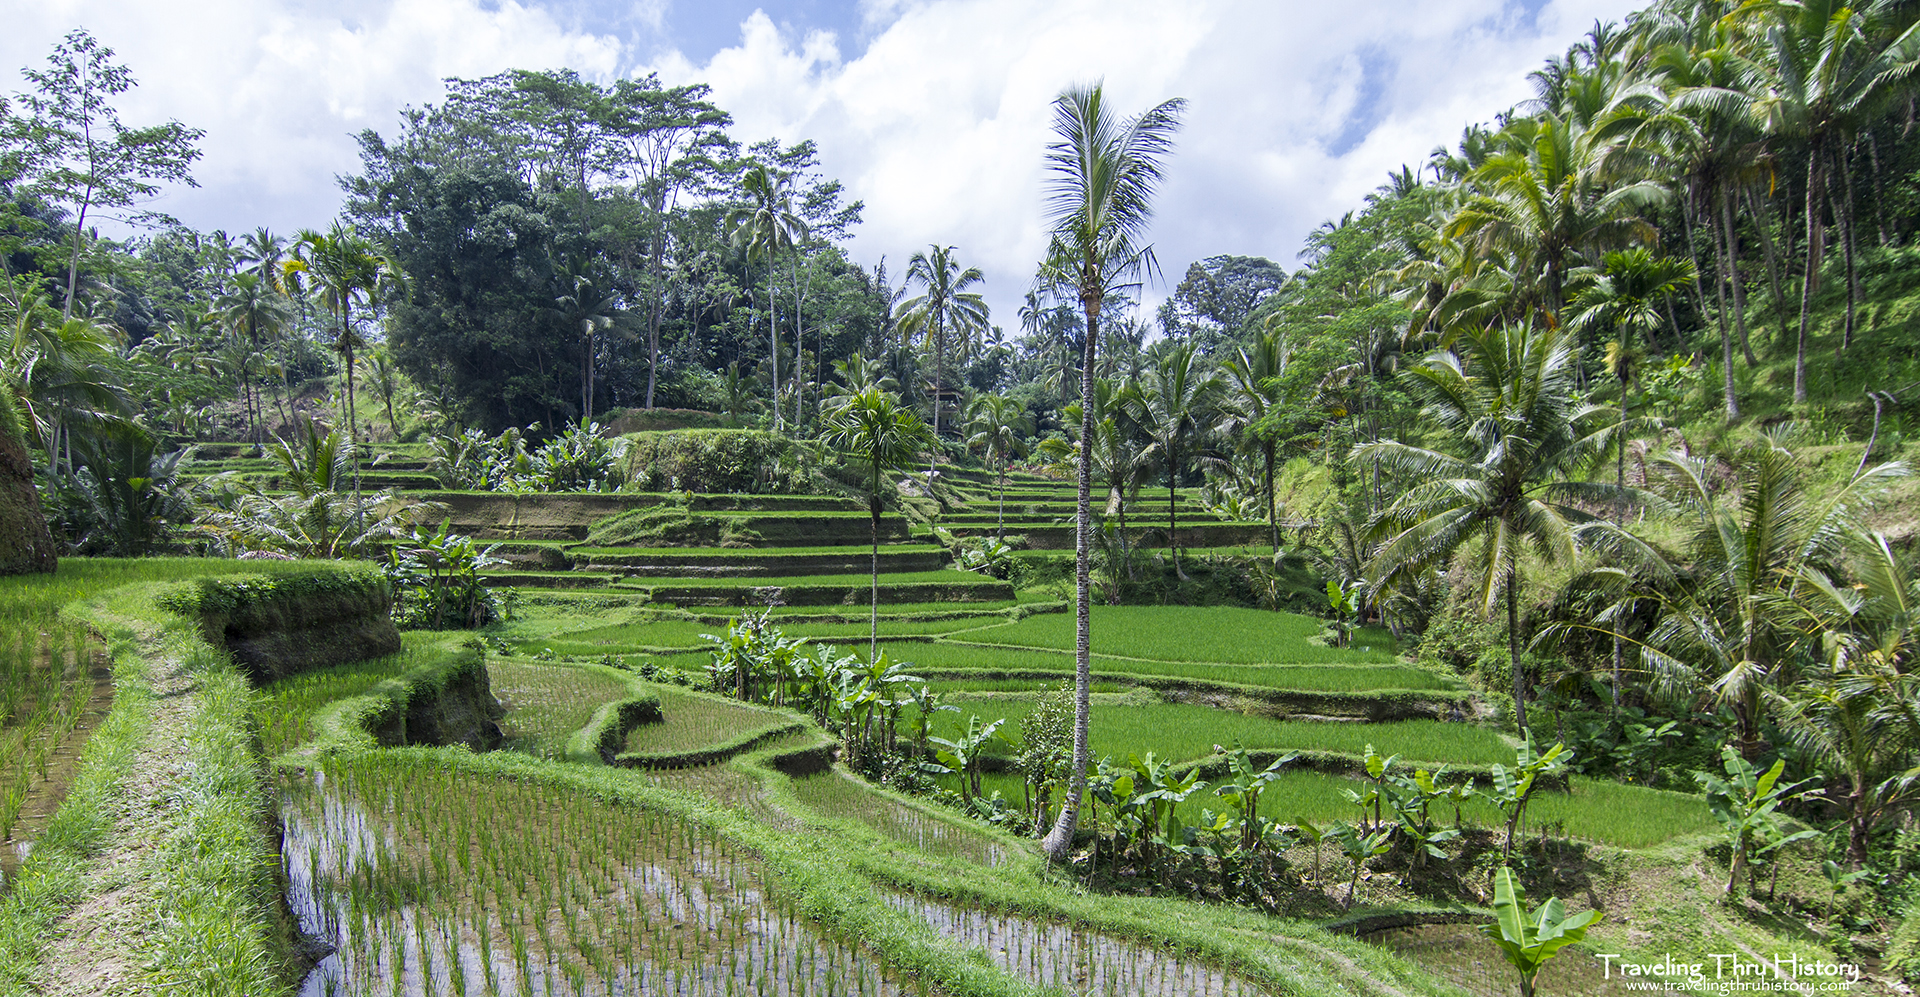 rice essay photo essay nori sushi ese cuisine sarah wickett bali  photo essay the terraced rice fields of bali we were under the impression that there was